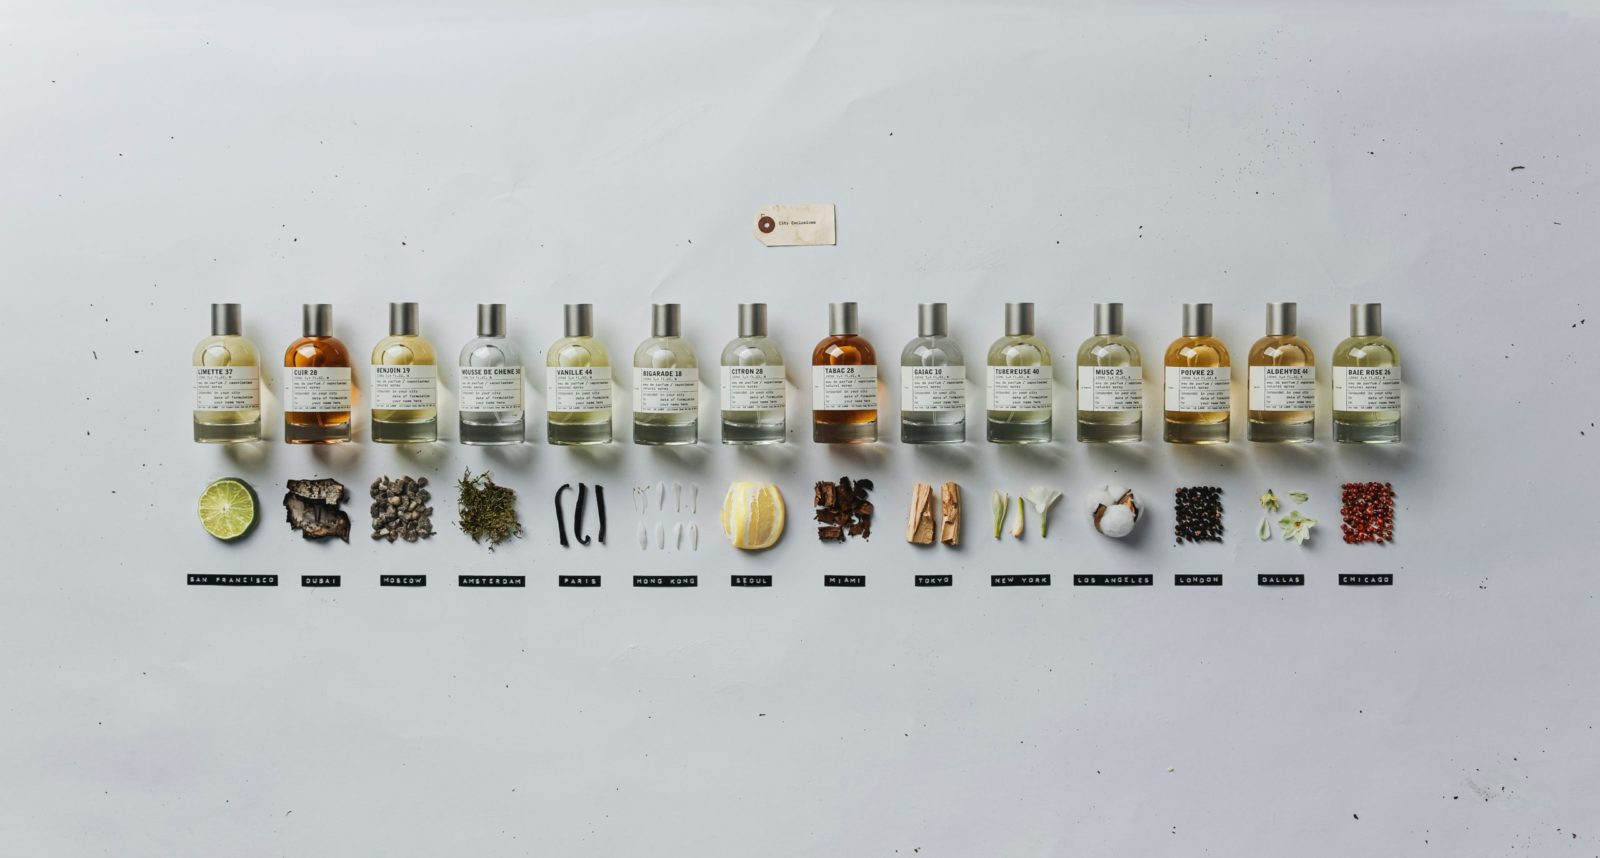 Smells like a vacation: Le Labo's City Exclusive scents are available again